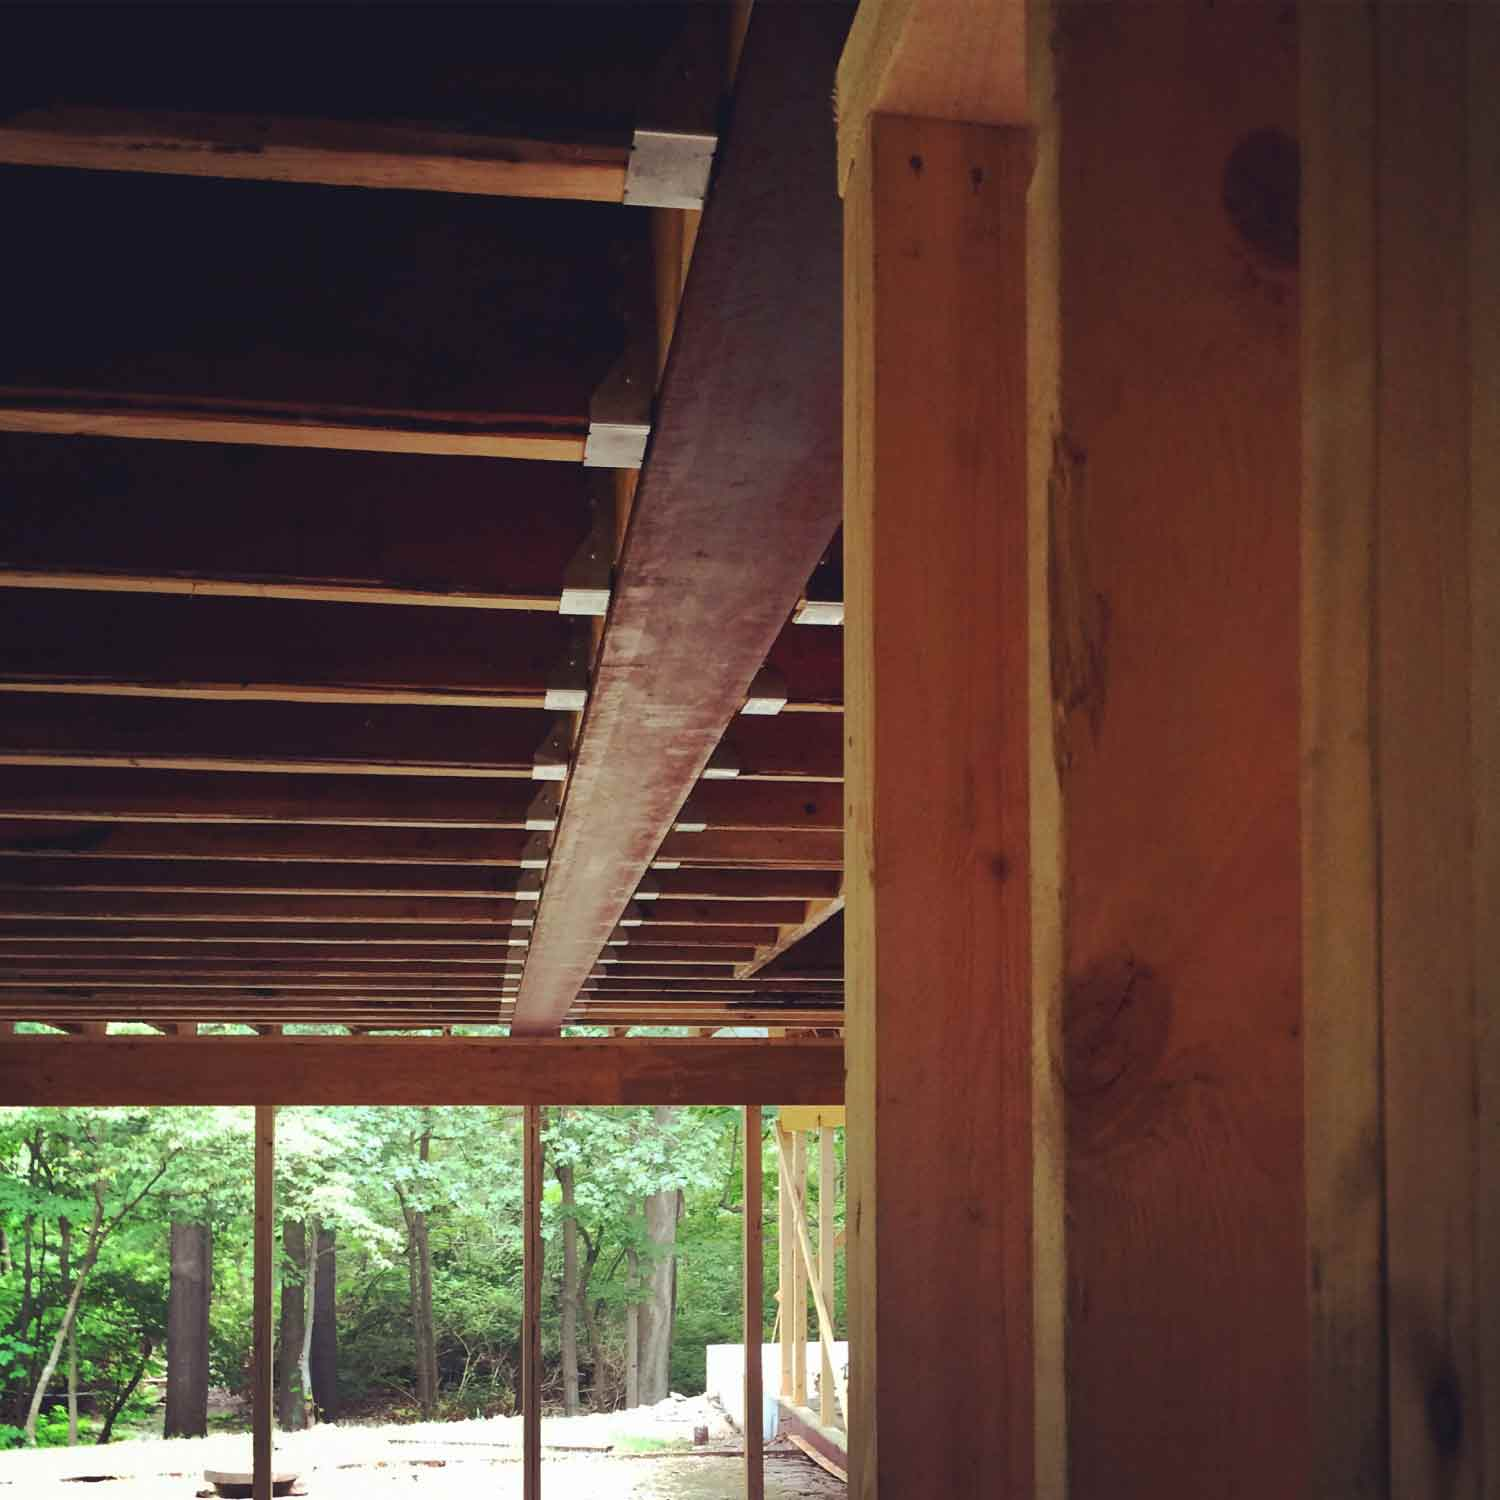 Mid-century Modern Renovation 2 - New Steel Beam - HAUS Architecture, Christopher Short, Indianapolis Architect